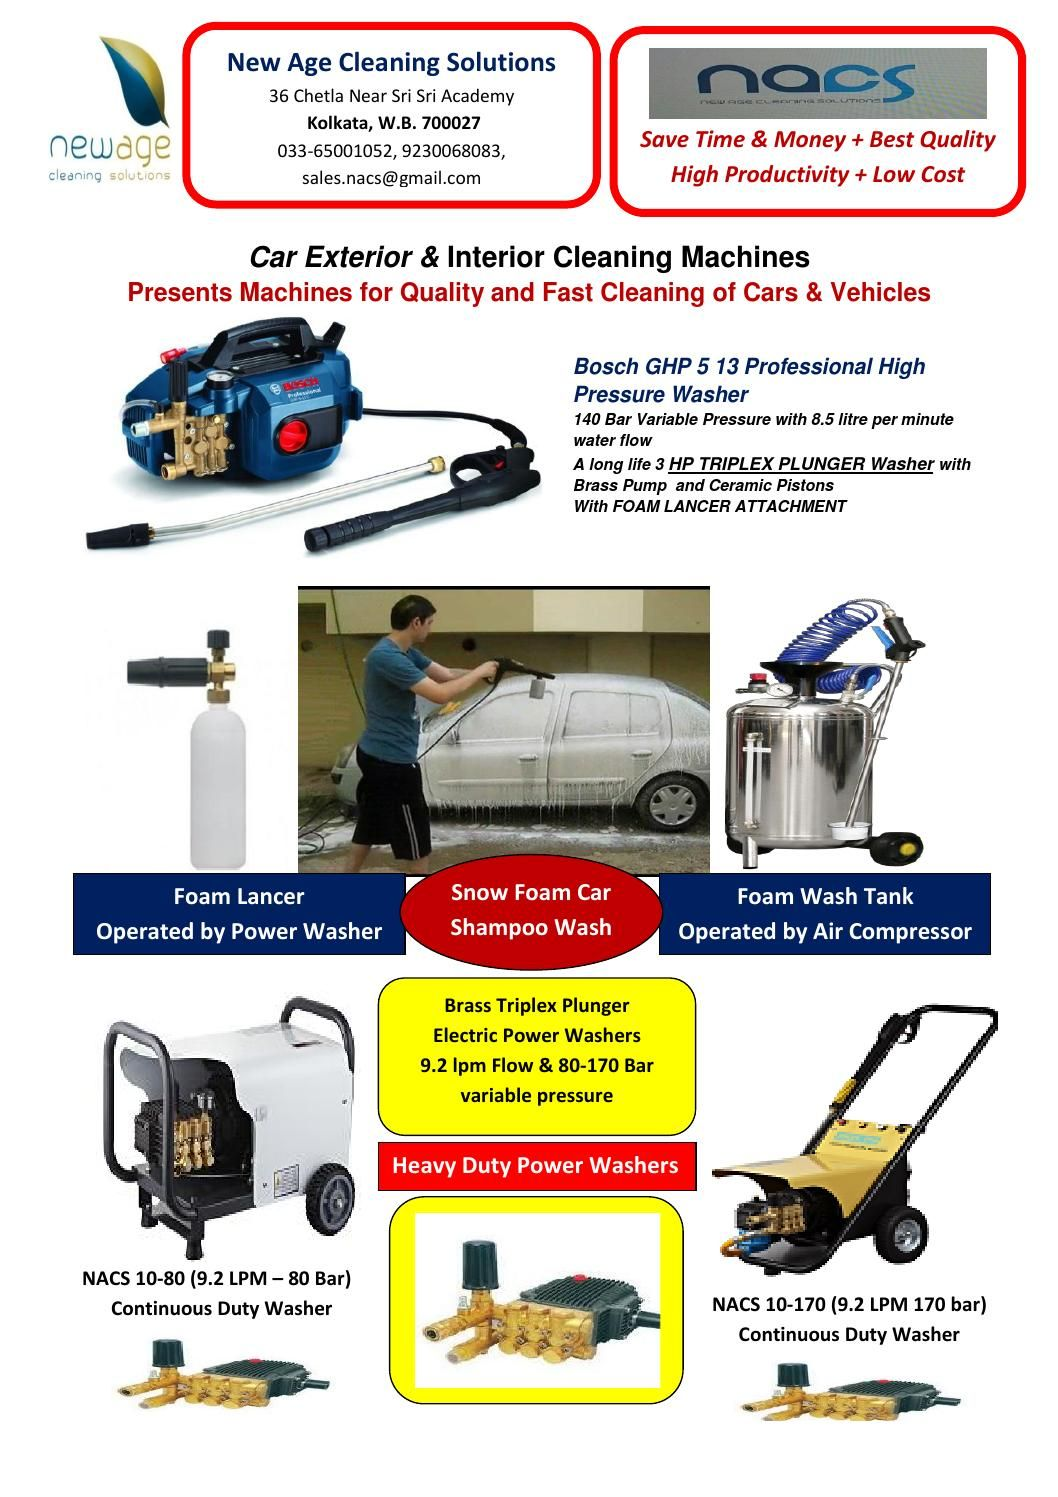 car exterior interior cleaning machines car cleaning steam cleaning machine and cleaning. Black Bedroom Furniture Sets. Home Design Ideas